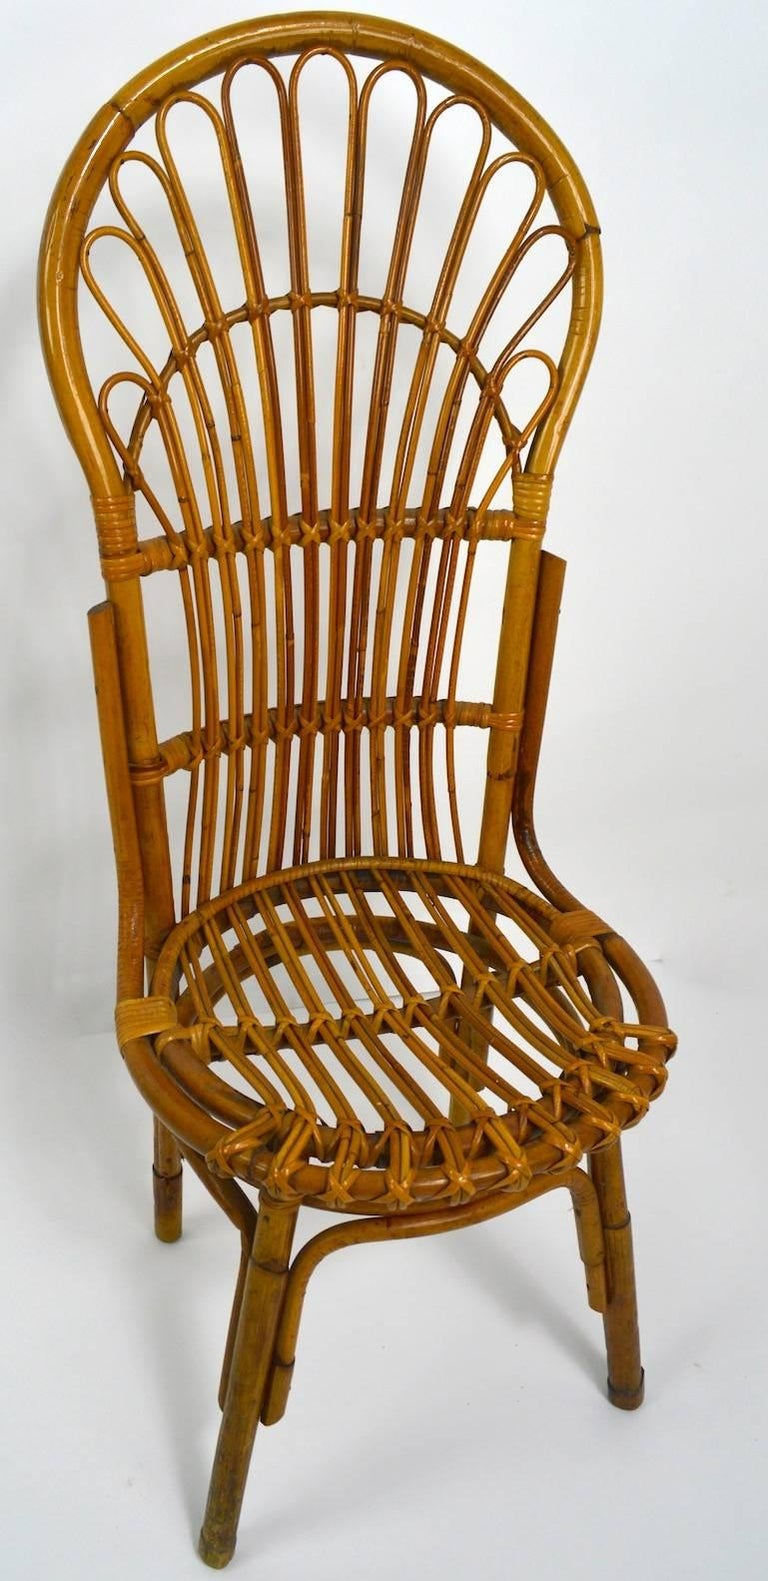 Pair of Exaggerated Form High Back Bamboo Chairs after Albini For Sale 3